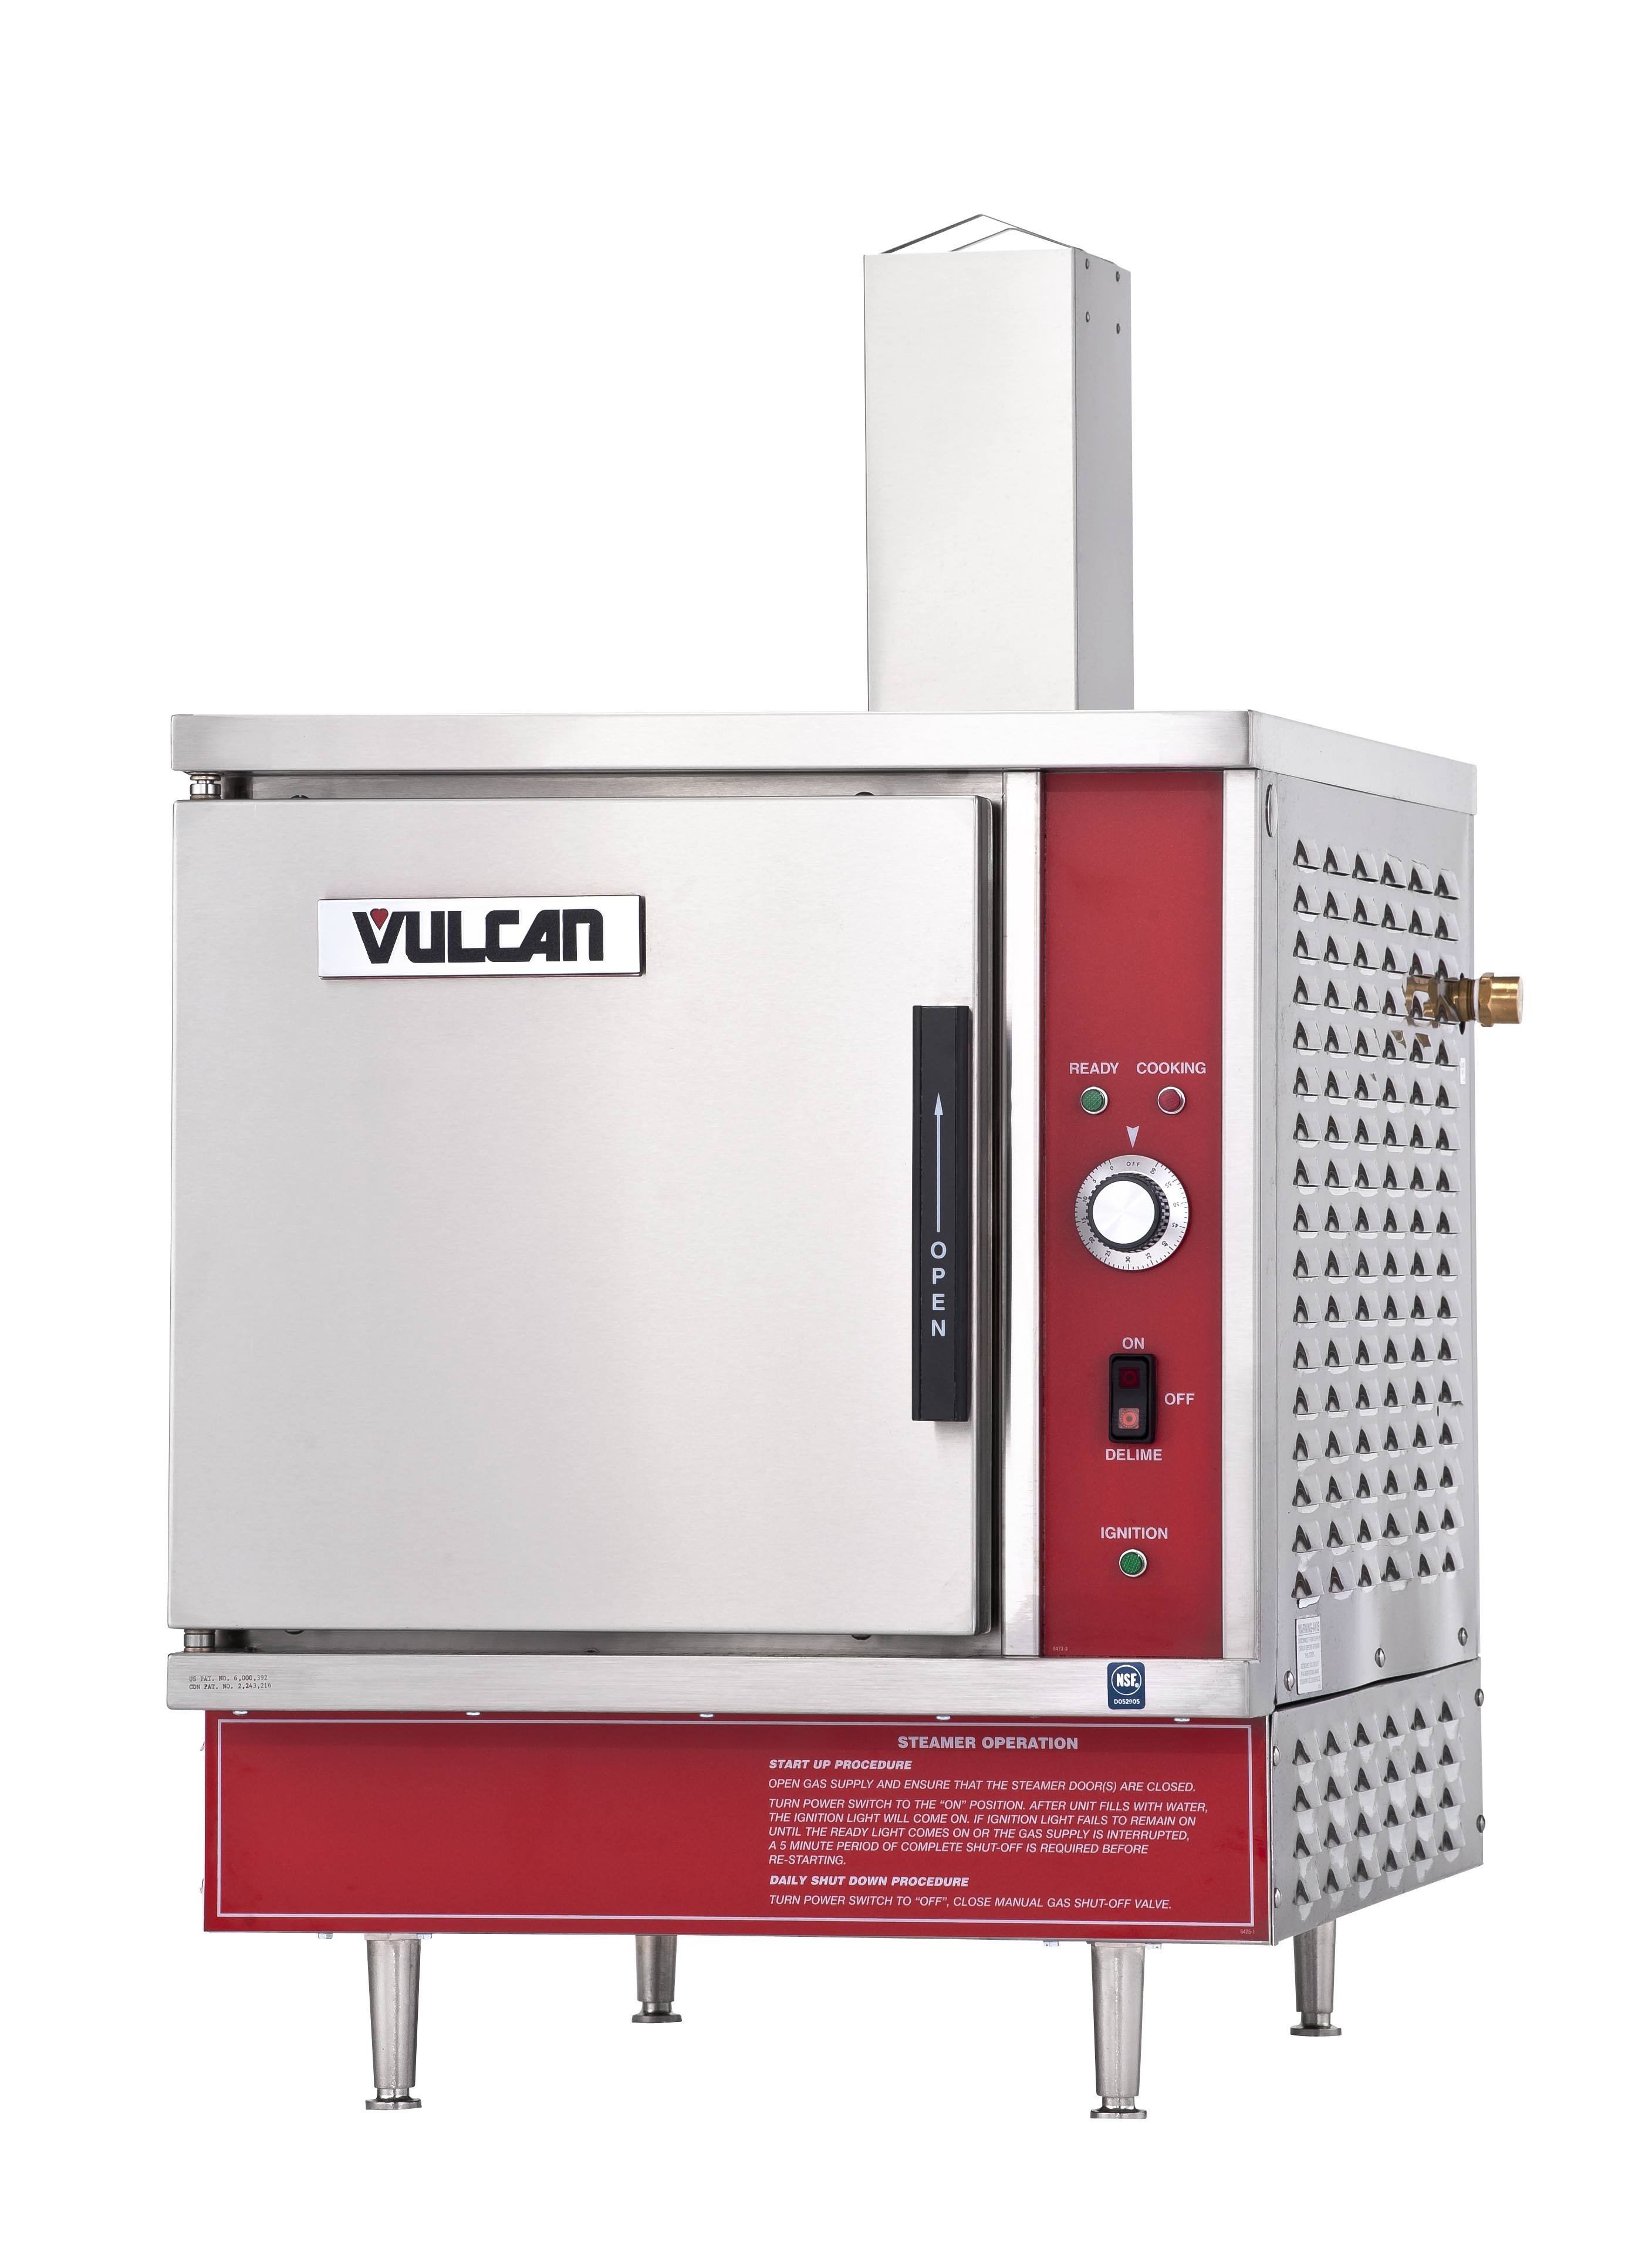 Vulcan K40glt Lp Gas 2 3 Steam Jacketed Tilting Kettle 40 Gal Electric 6 24kw Open Radiant Elements 1 Gn Oven With 4 Rack Vsx5g Countertop Convection Steamer Ng 5 Pan Capacity